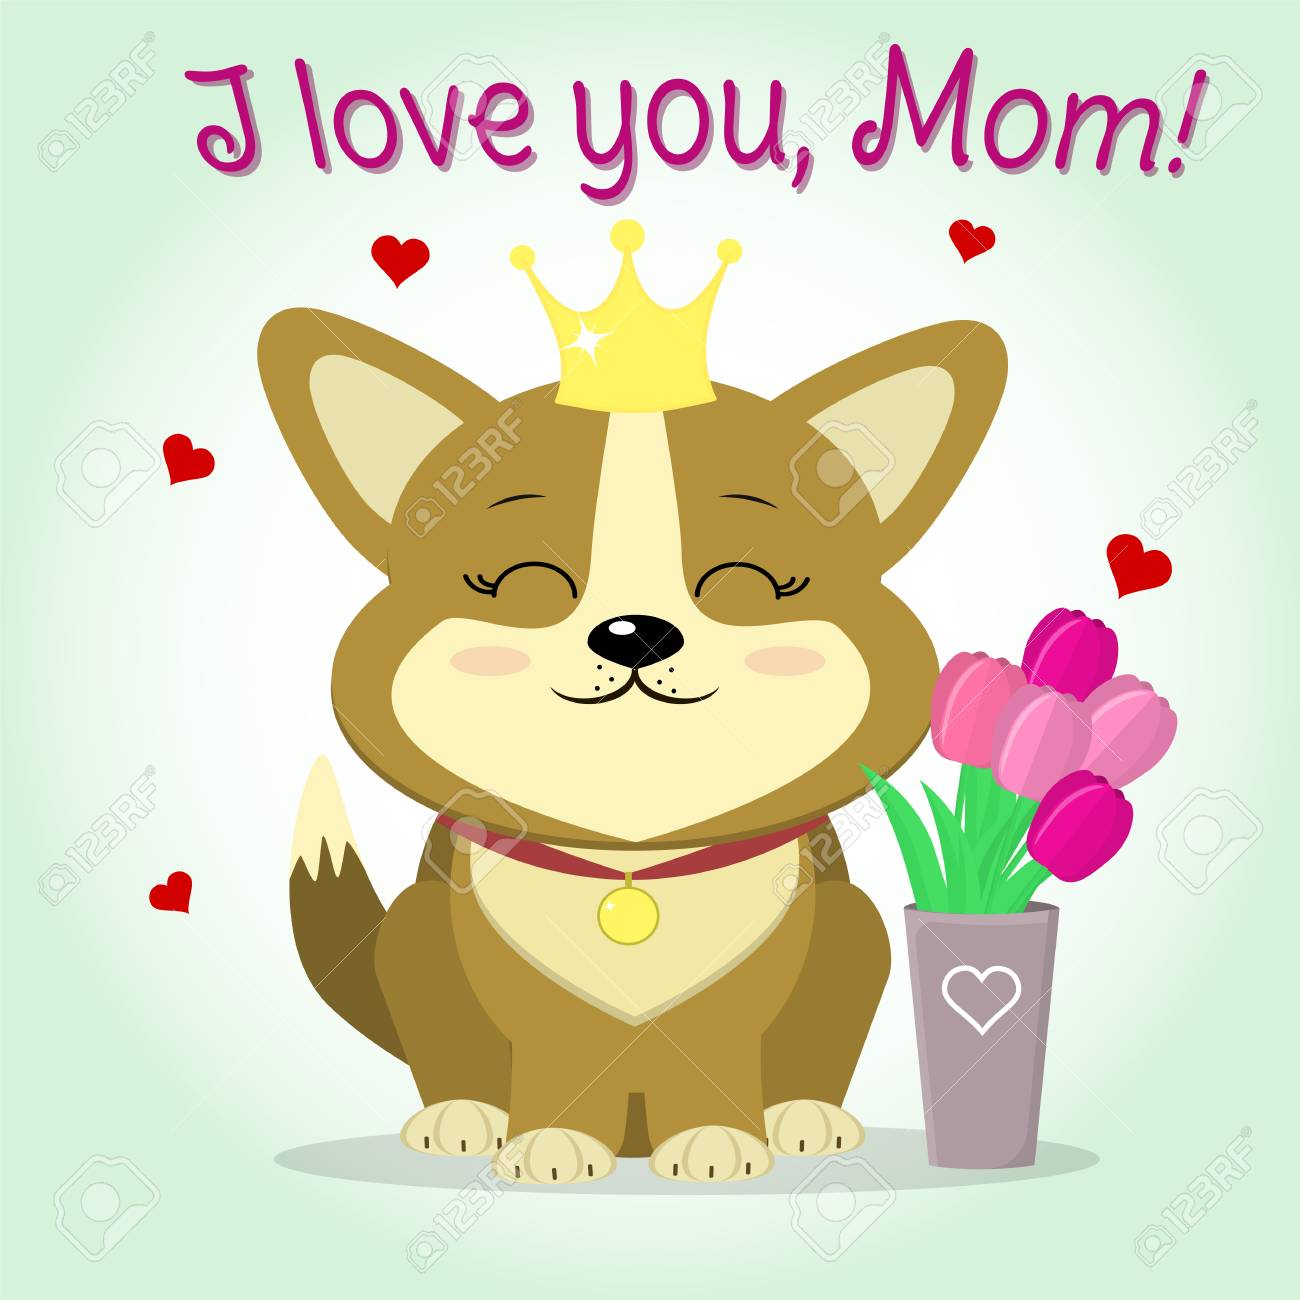 Cute Puppy Corgi With A Crown And Medallion Sitting Next To Royalty Free Cliparts Vectors And Stock Illustration Image 97723434 Provided to youtube by sony music entertainment dog with crown and earring · joe satriani additional creations and bonus tracks ℗ 2004 epic records, a. cute puppy corgi with a crown and medallion sitting next to